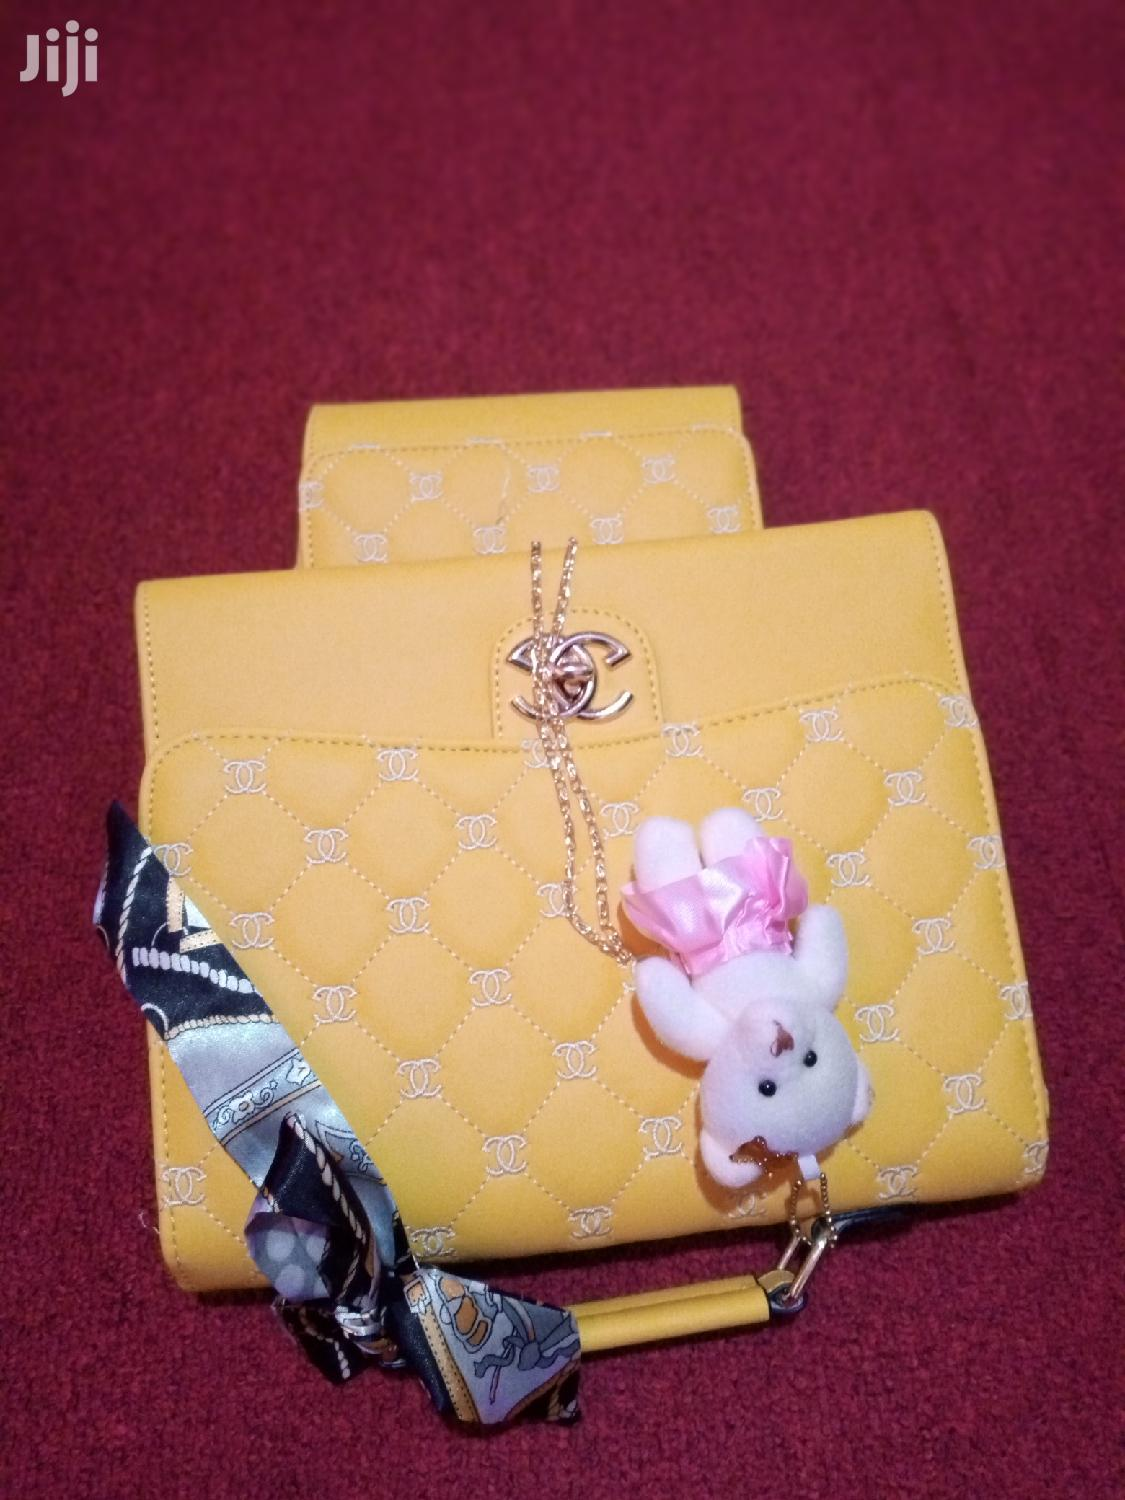 Ladies Hand Bags In Different Colors